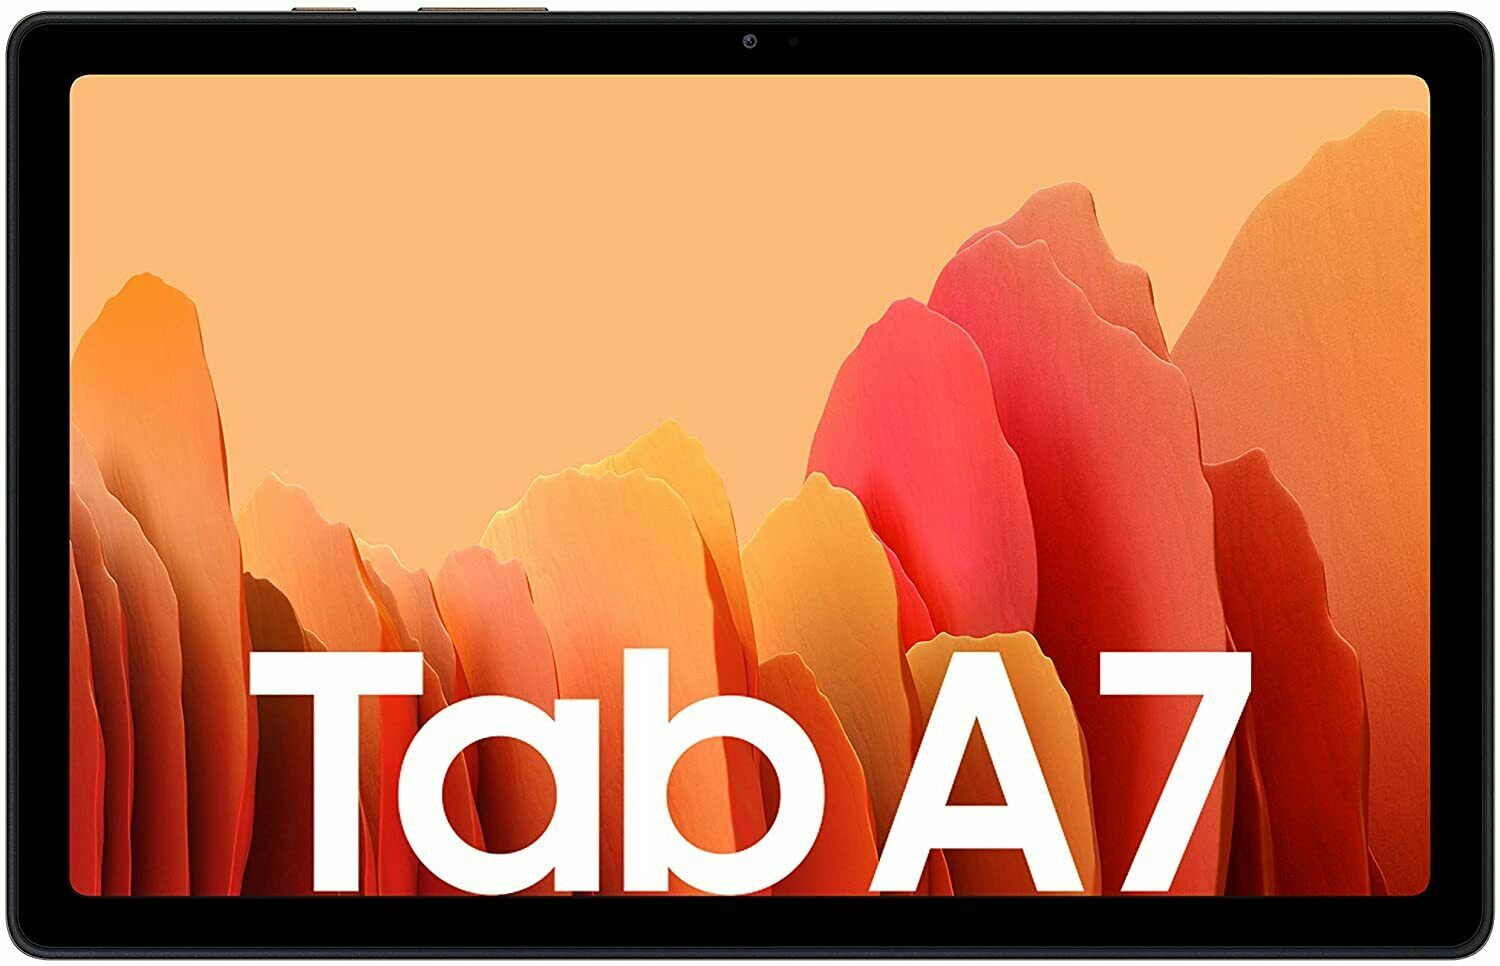 Samsung Galaxy: Samsung Galaxy Tab A7 Android 10 Tablet LTE 10,4 Zoll 32GB 3GB